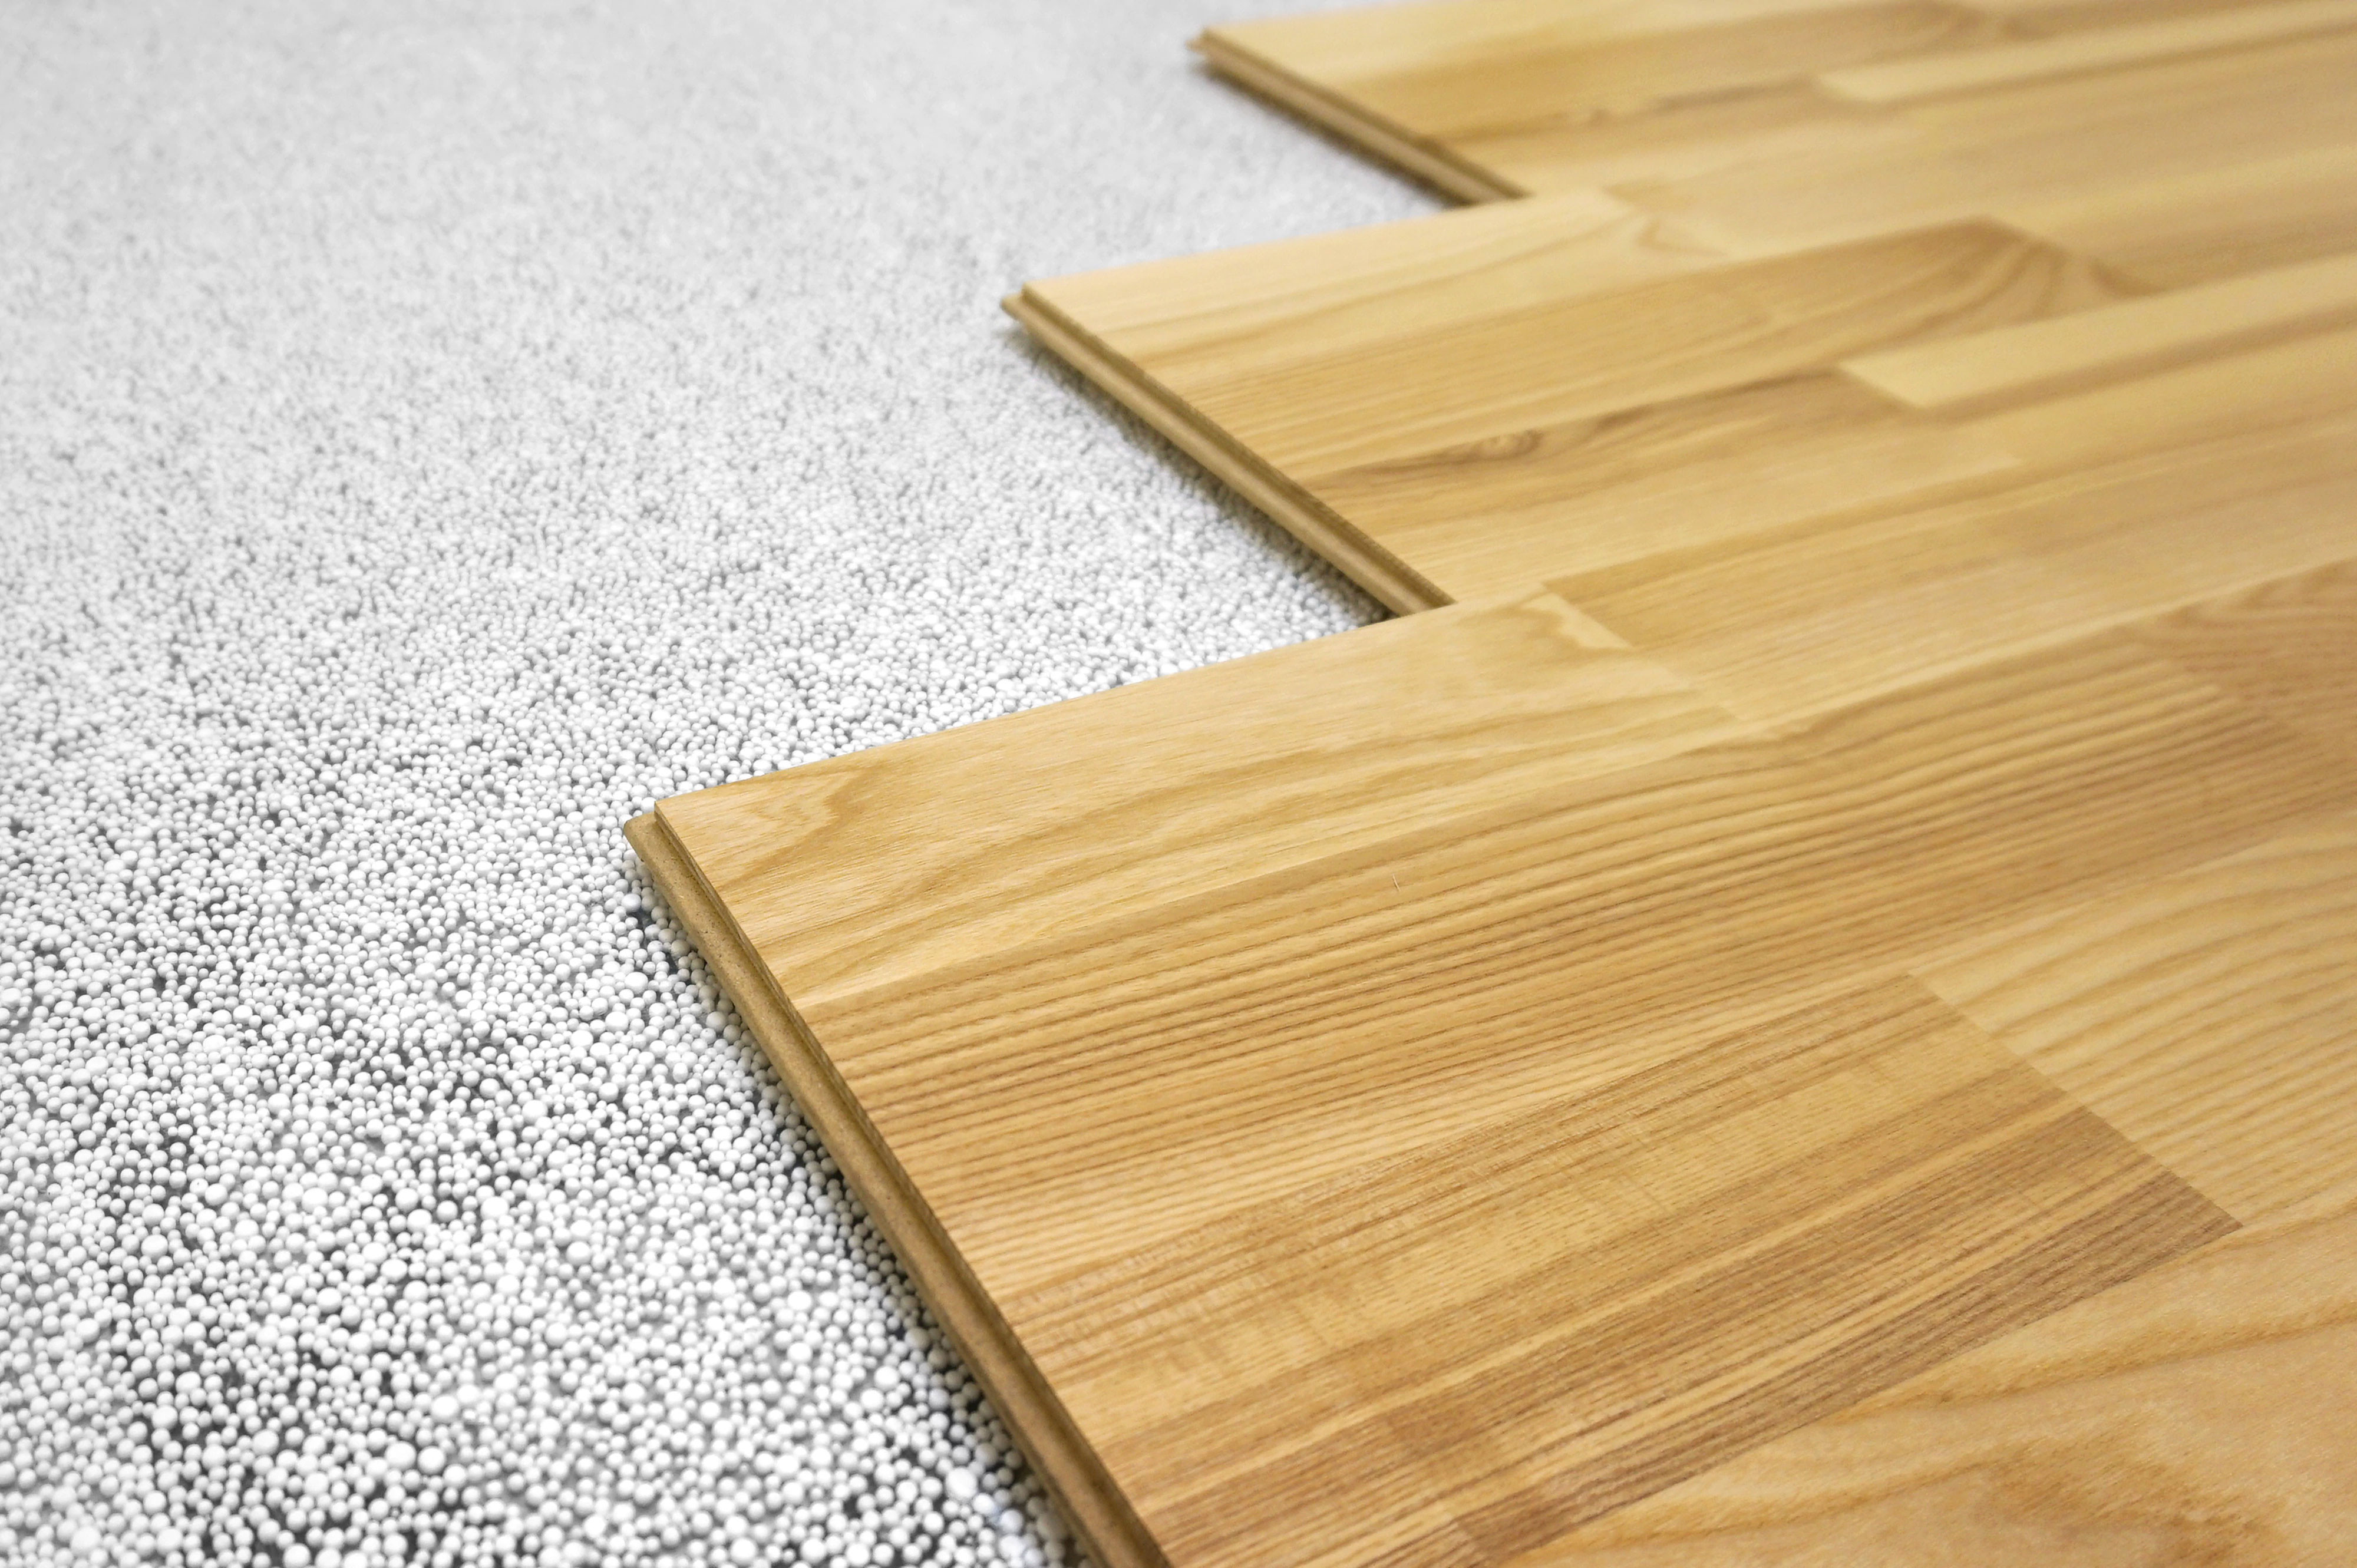 cheap hardwood flooring nashville tn of what does it cost to install laminate flooring angies list with wood lam